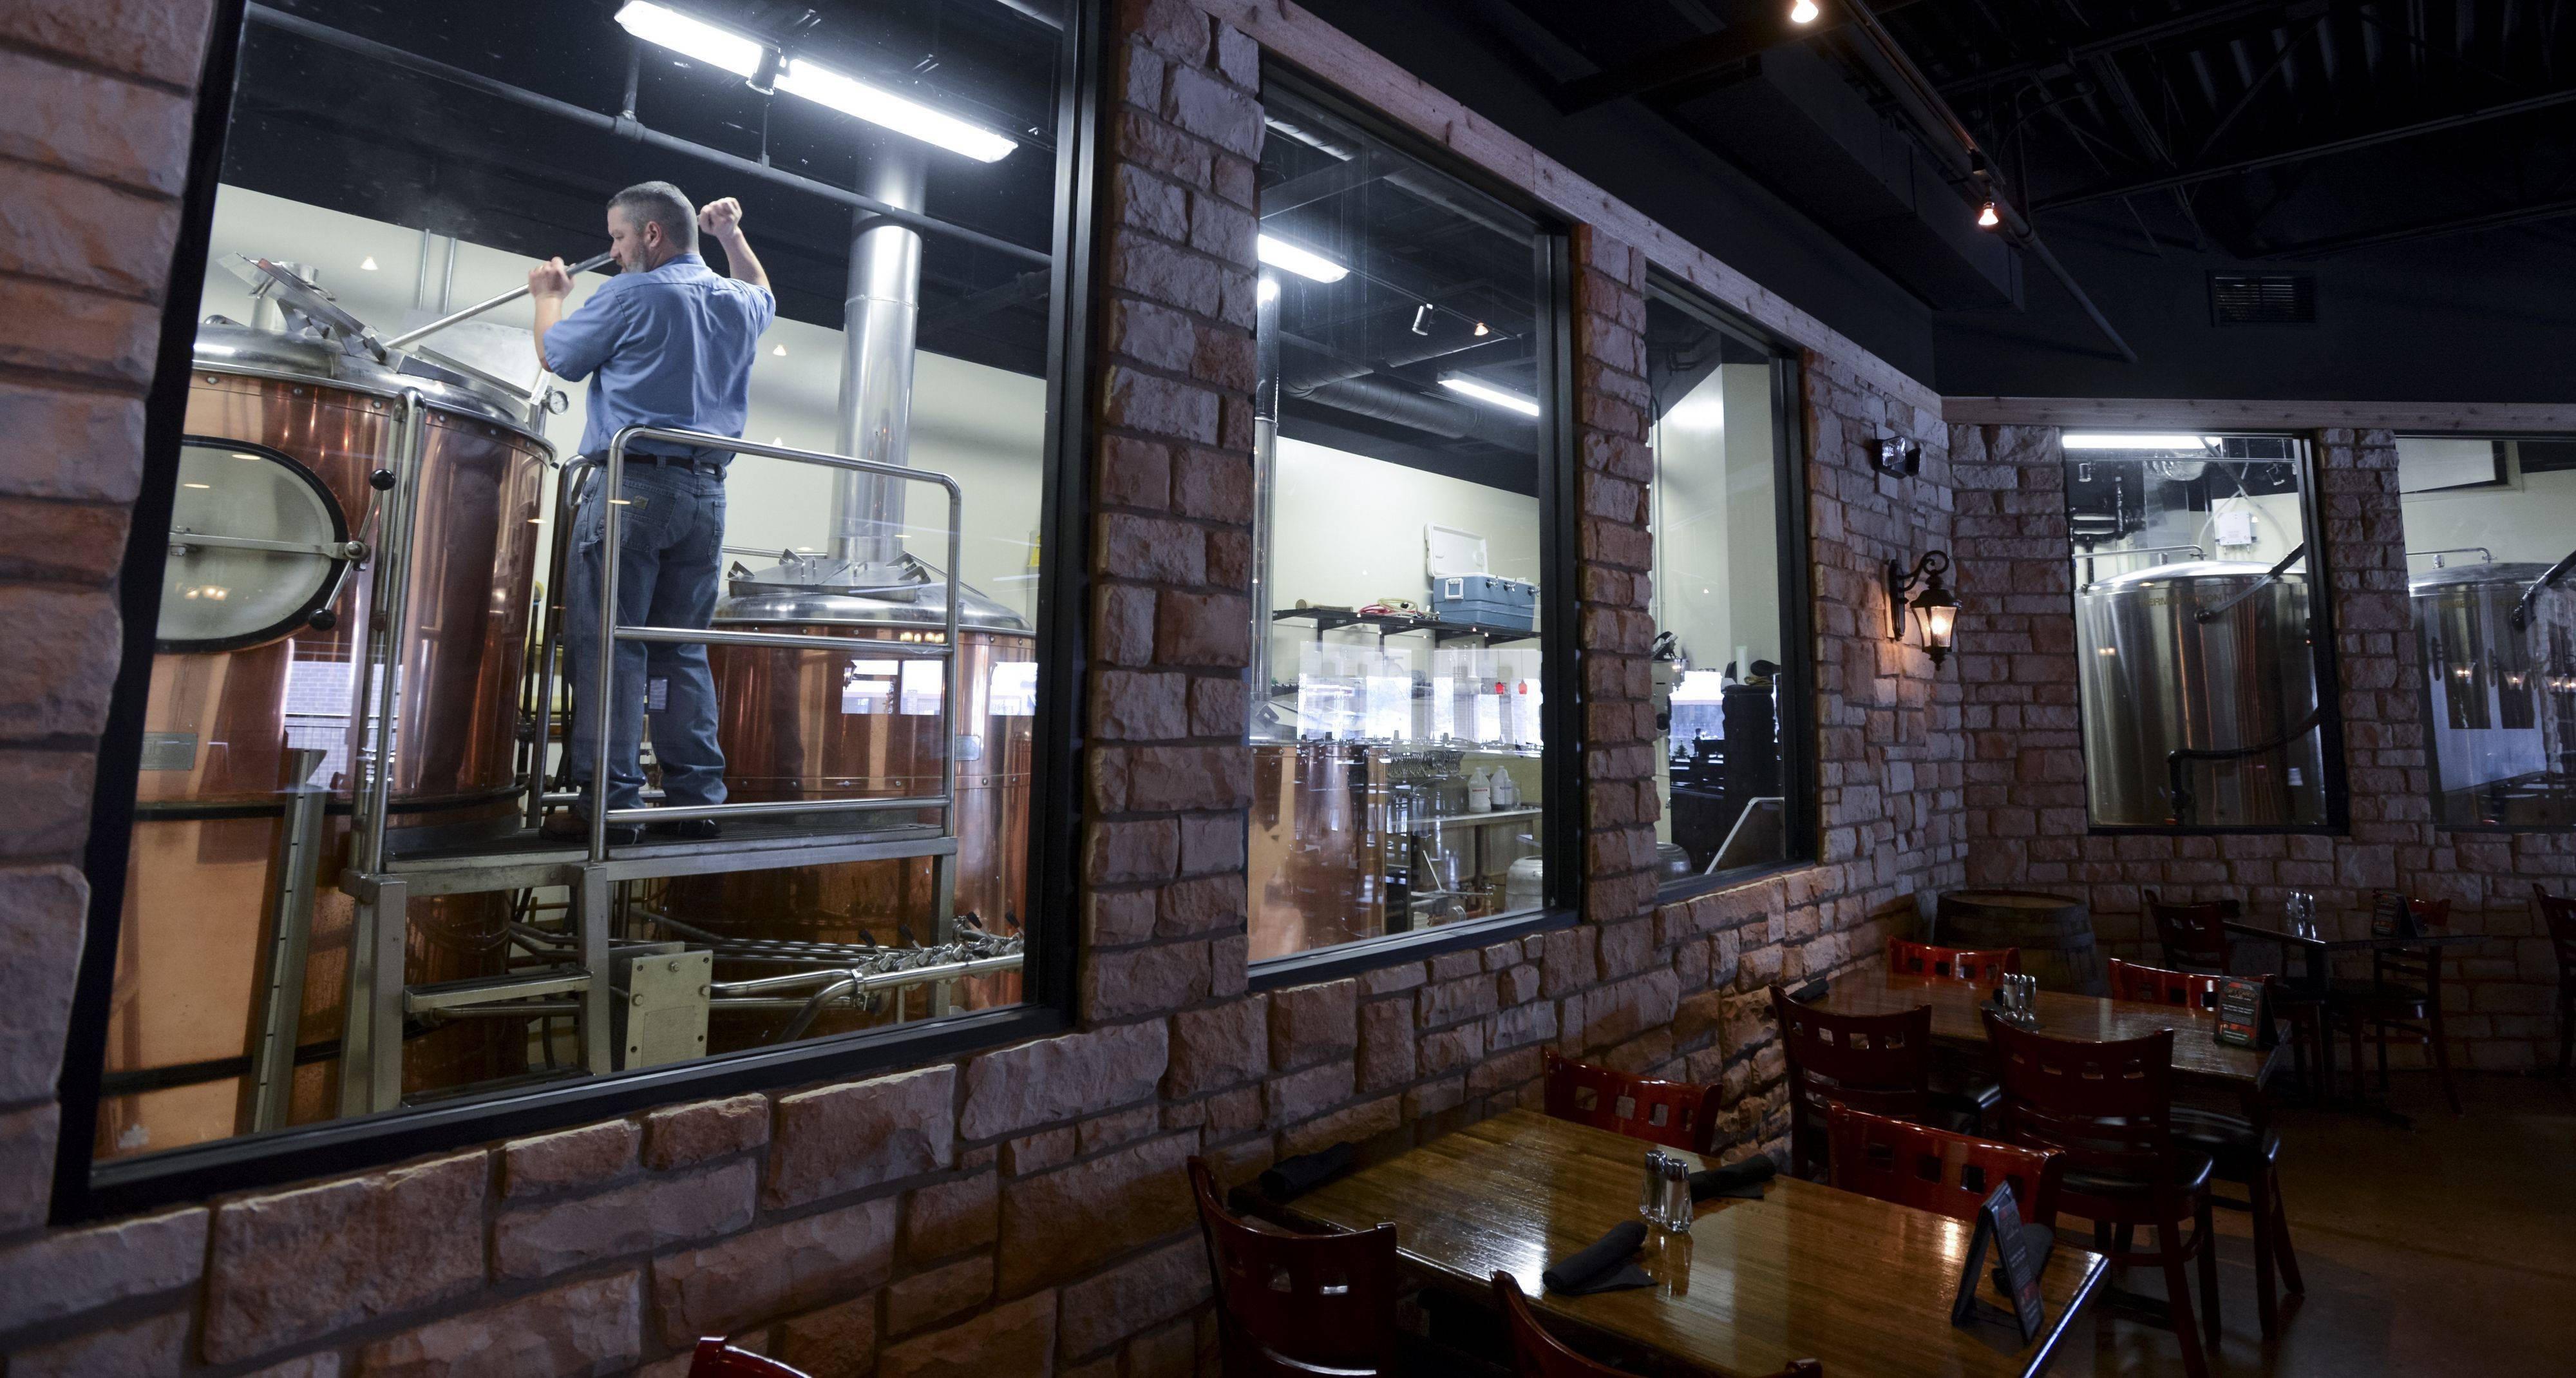 Brewmaster Ken McMullen's brew area is walled with windows so patrons at the Hopvine Brewing Company can see behind the scenes as they dine and enjoy some beers.